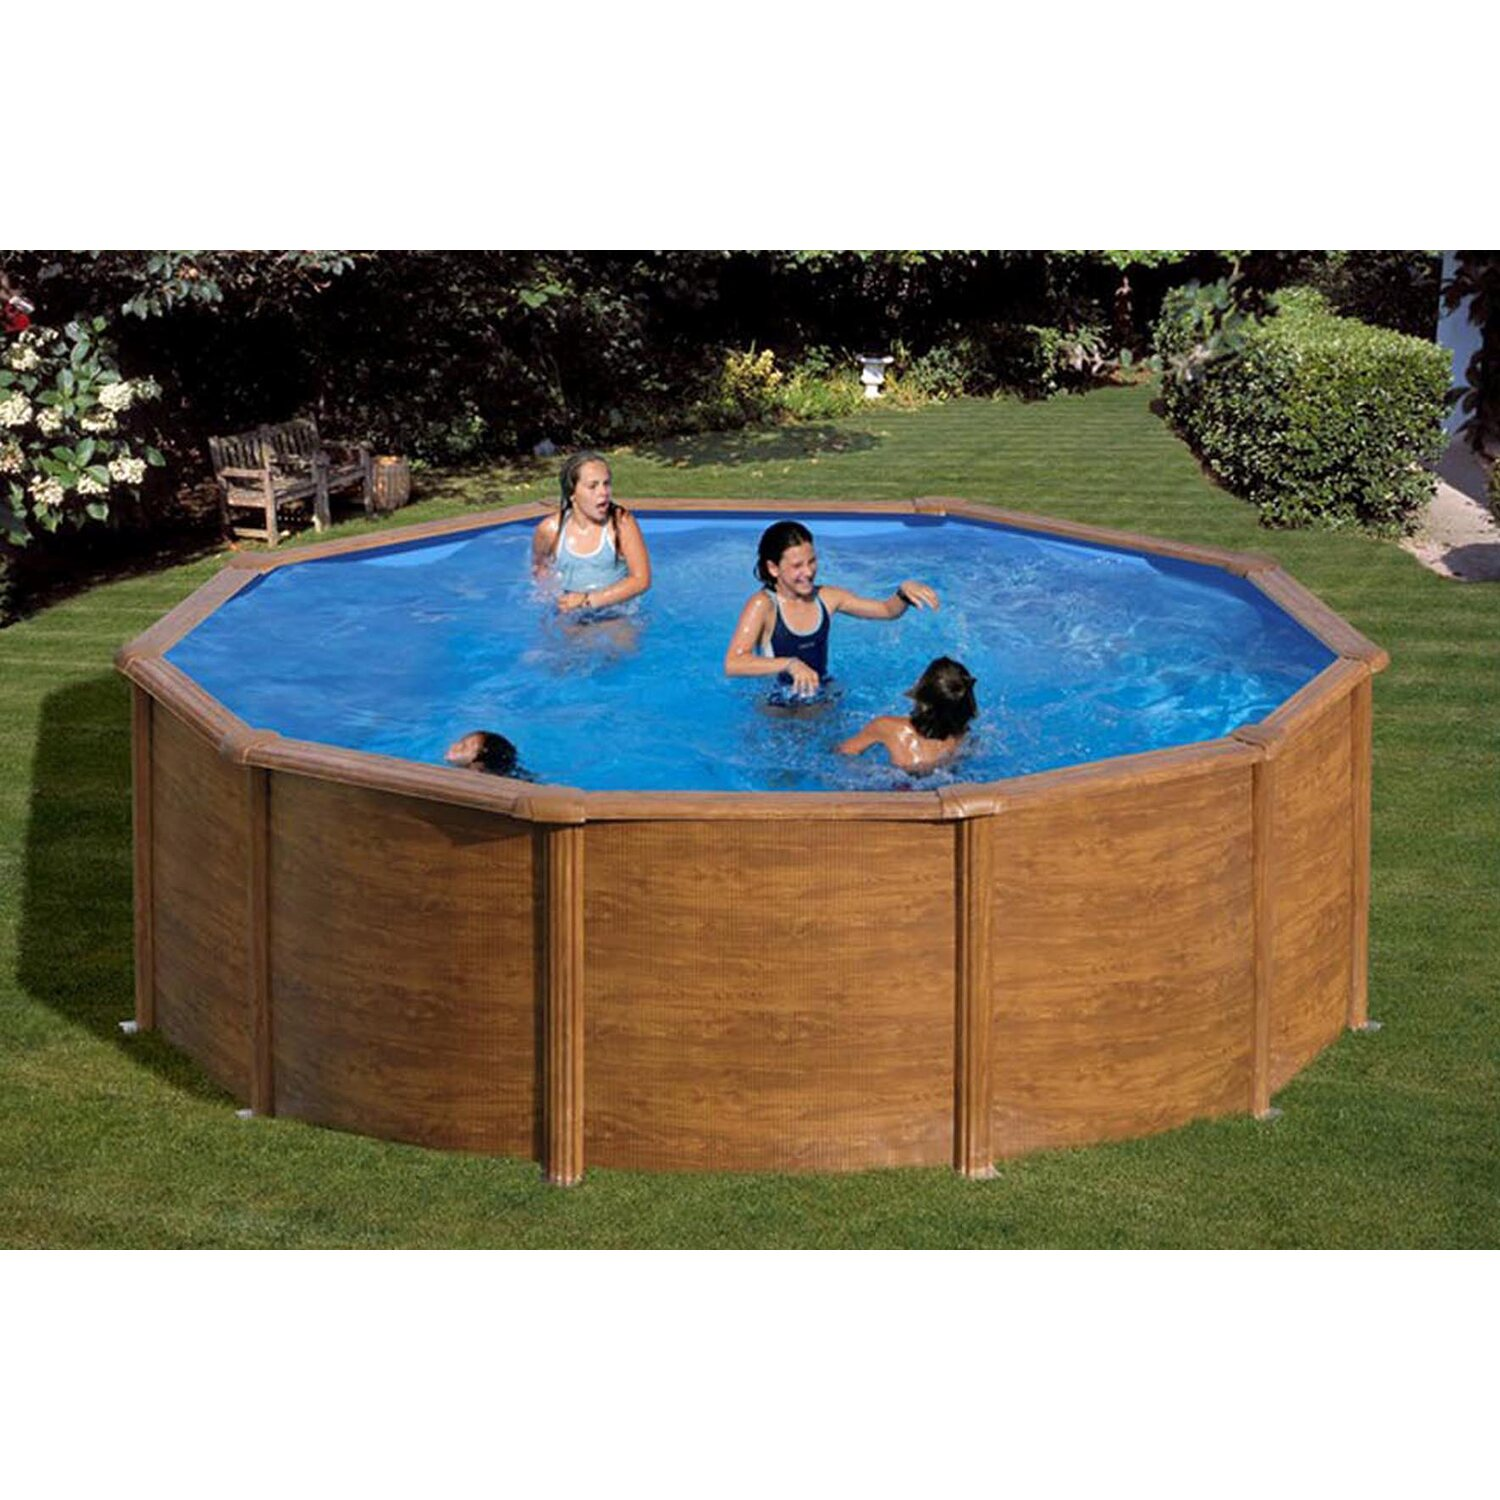 Summer fun holzpool set natur san diego aufstellbecken for Holzpool obi